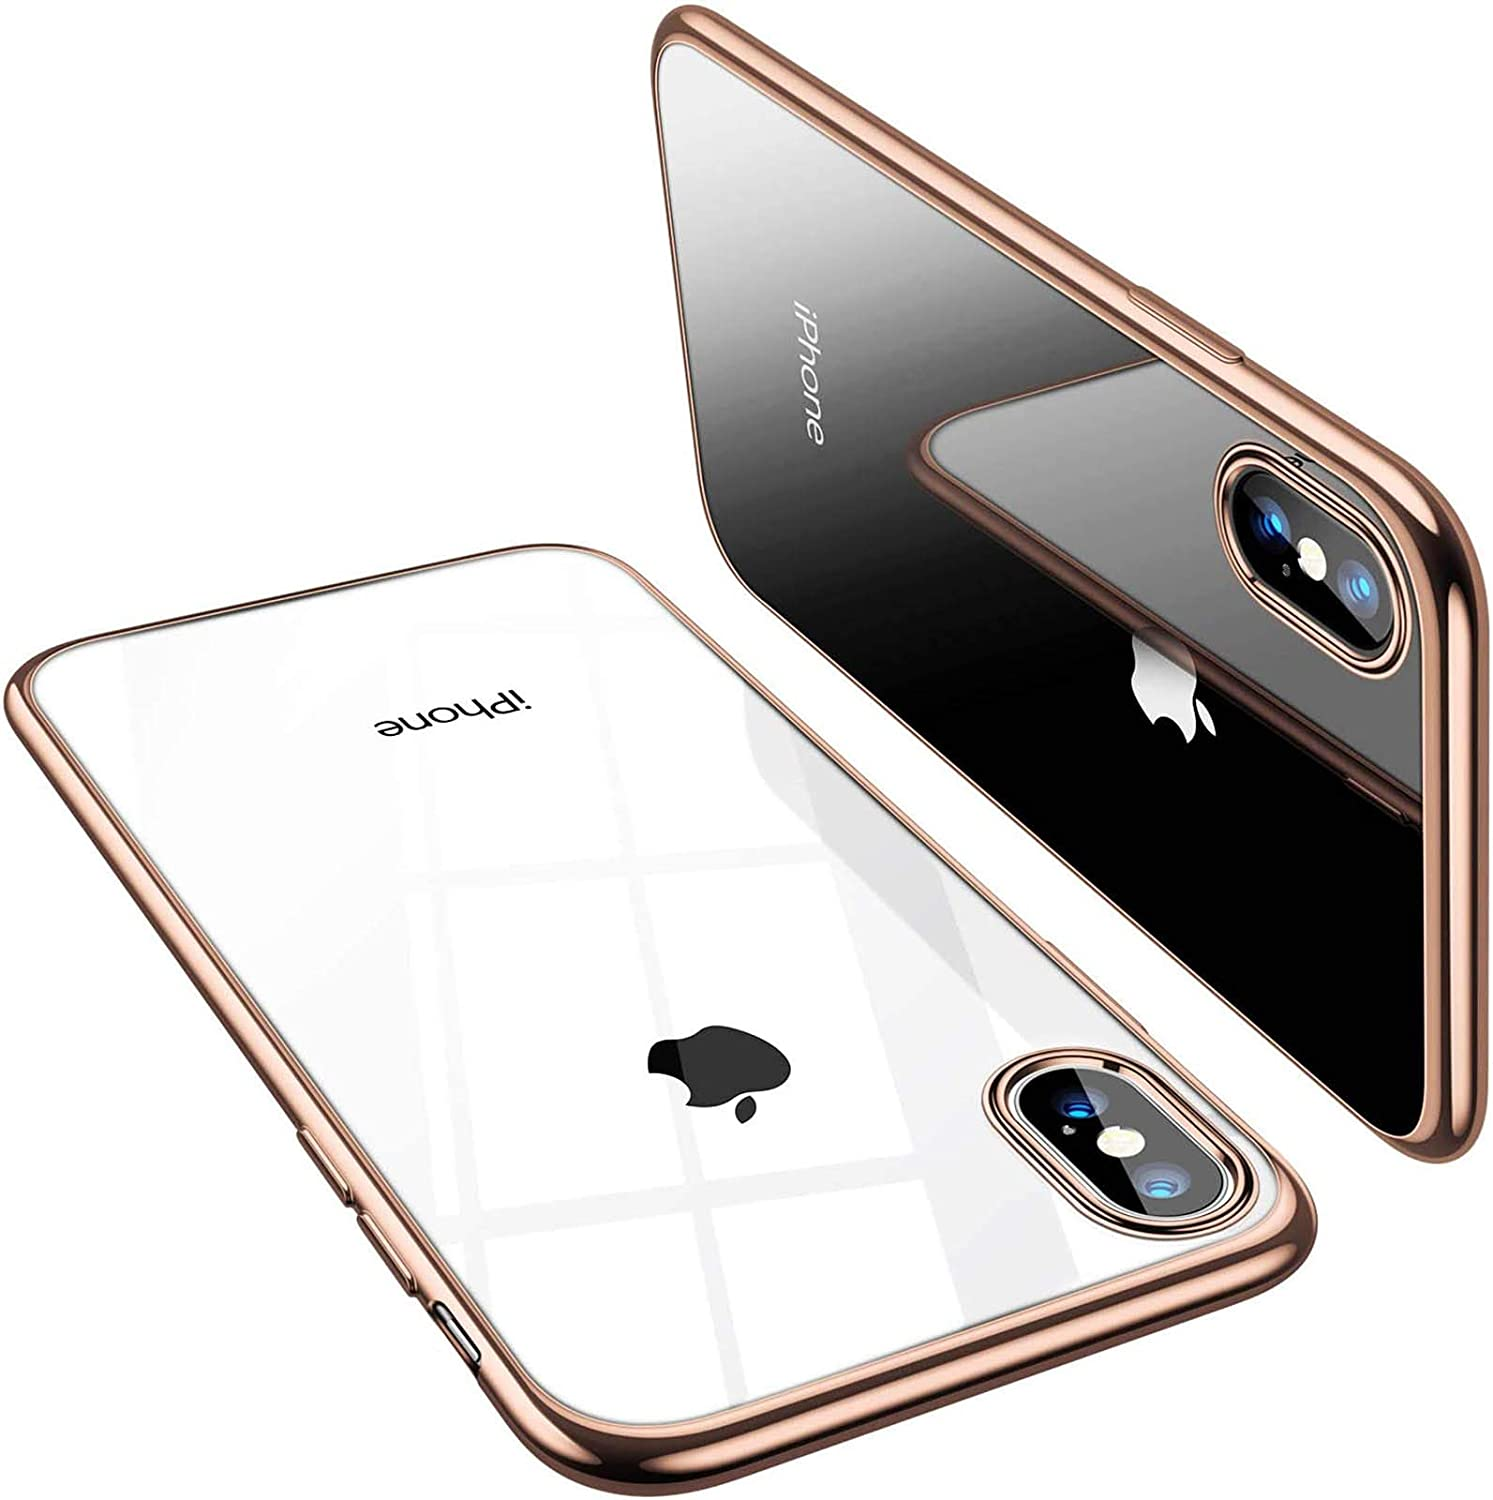 TORRAS Crystal Clear Compatible with iPhone Xs Max Case, [Anti-Yellowing] Soft Silicone Shockproof TPU Slim Thin Protective Phone Cover Case for iPhone Xs Max 6.5 inch- Gold